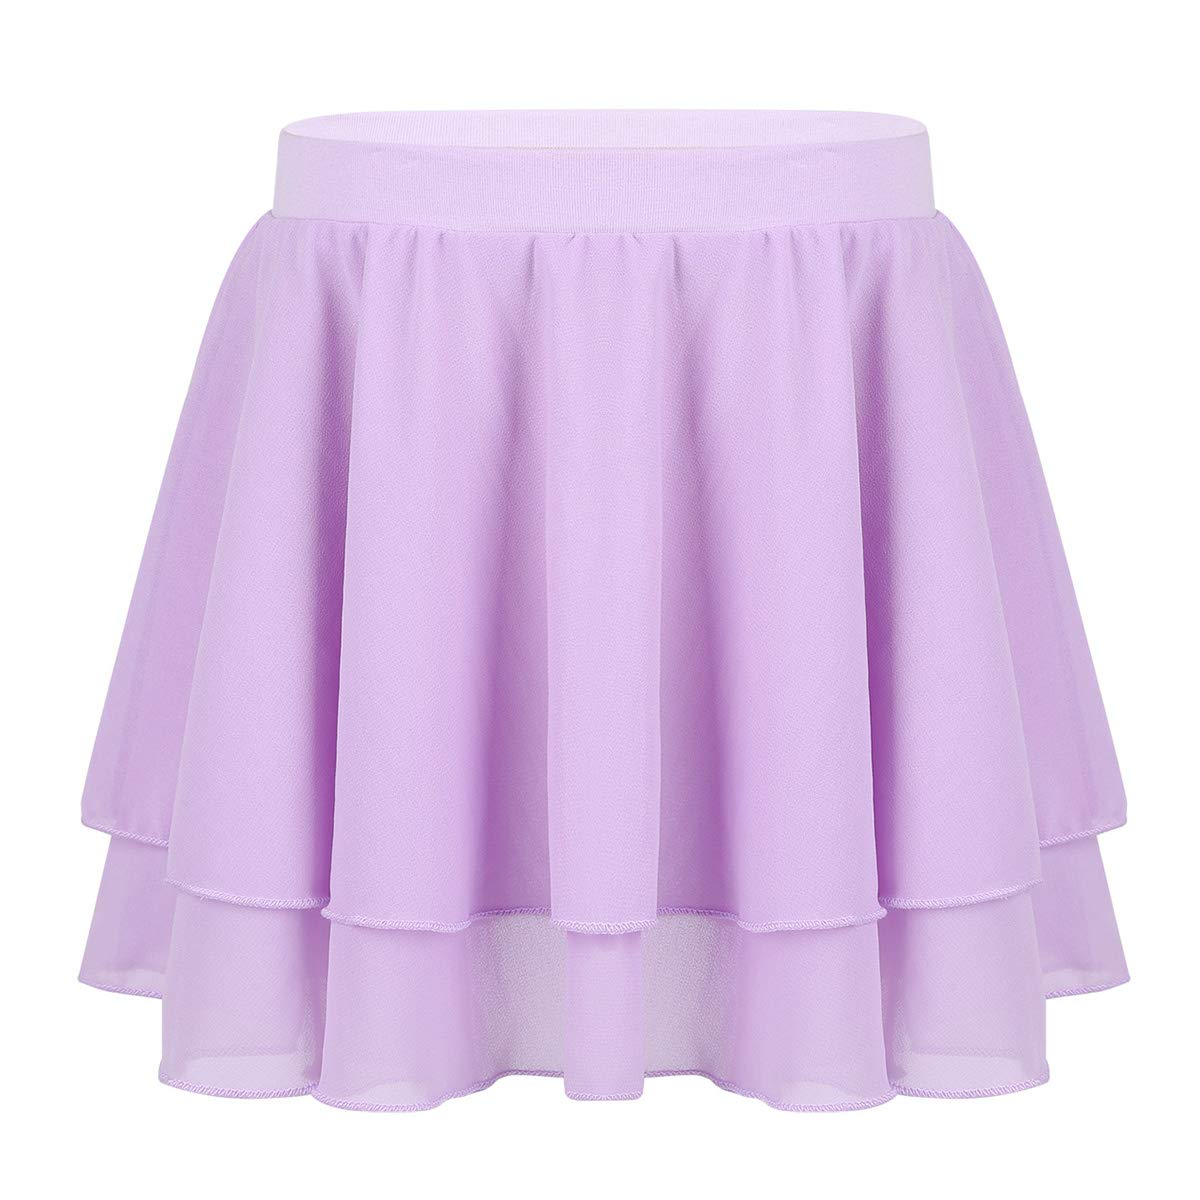 TiaoBug Girls' Ballet Dance Basic Wrap Over Scarf Chiffon Skirt with Tie Waist Collection Skate Workout Training Skorts Lavender Pull-On 8-10 by TiaoBug